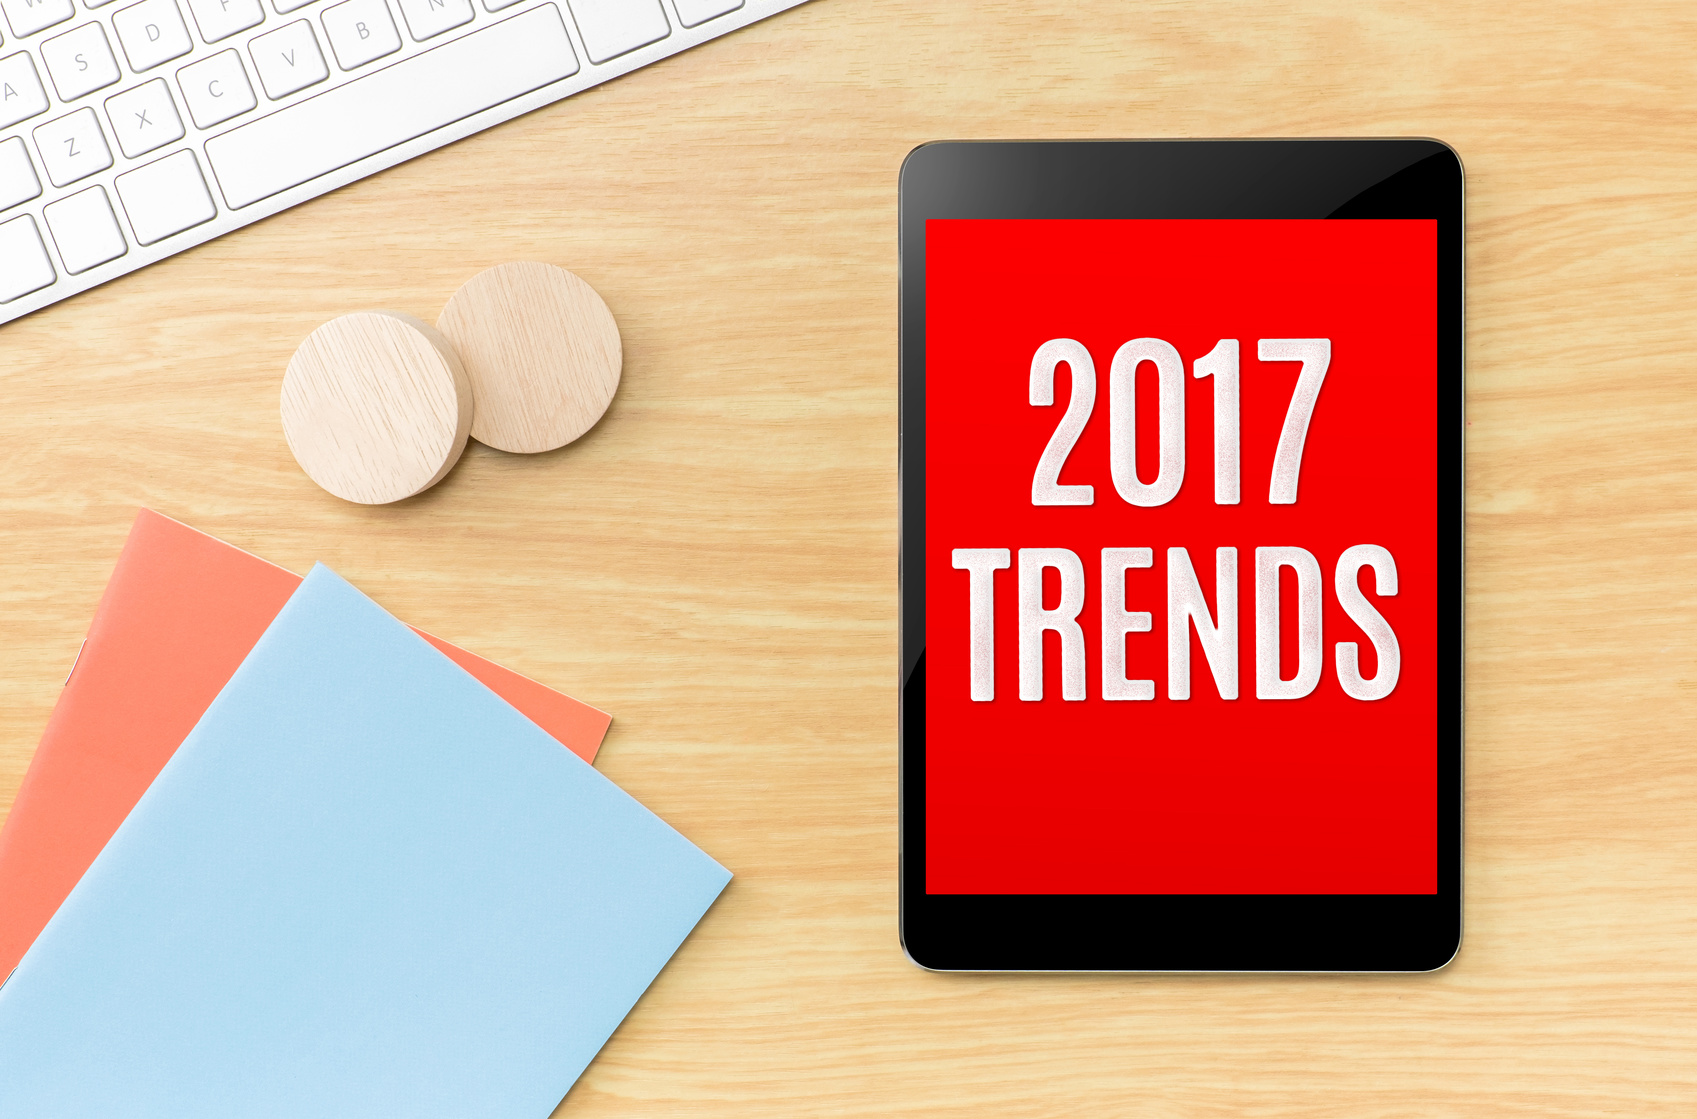 Top 10 Digital Marketing Trends for 2017